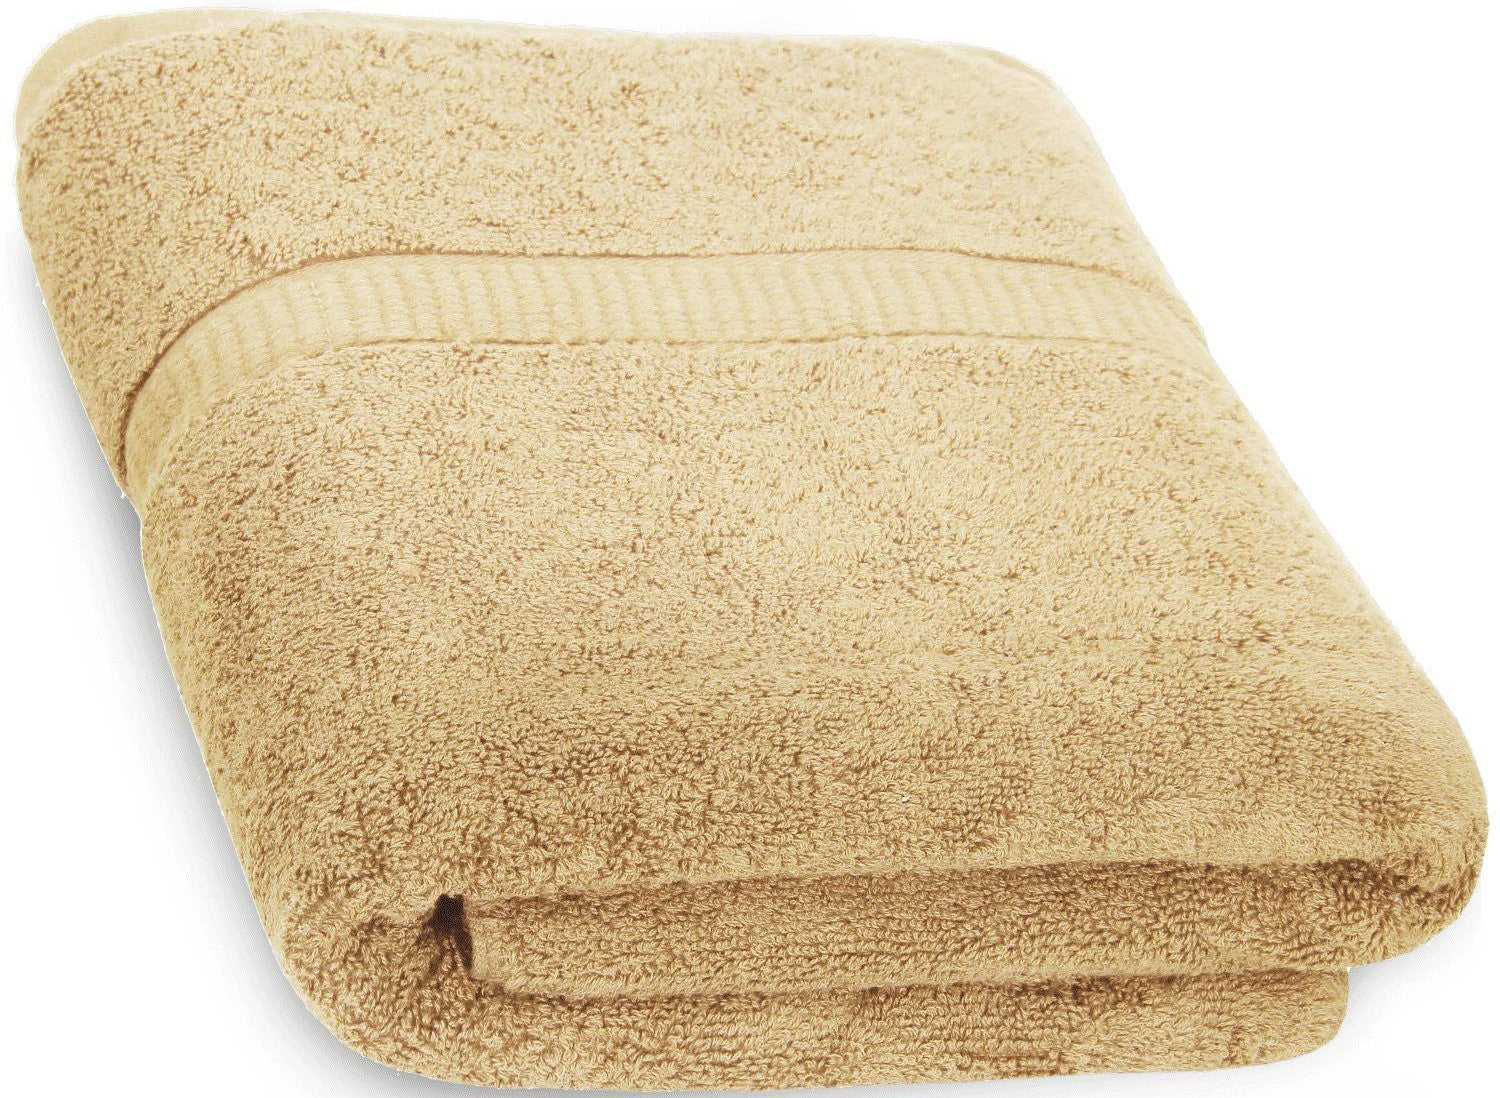 Luxury Bath Sheet Towel (Champagne)